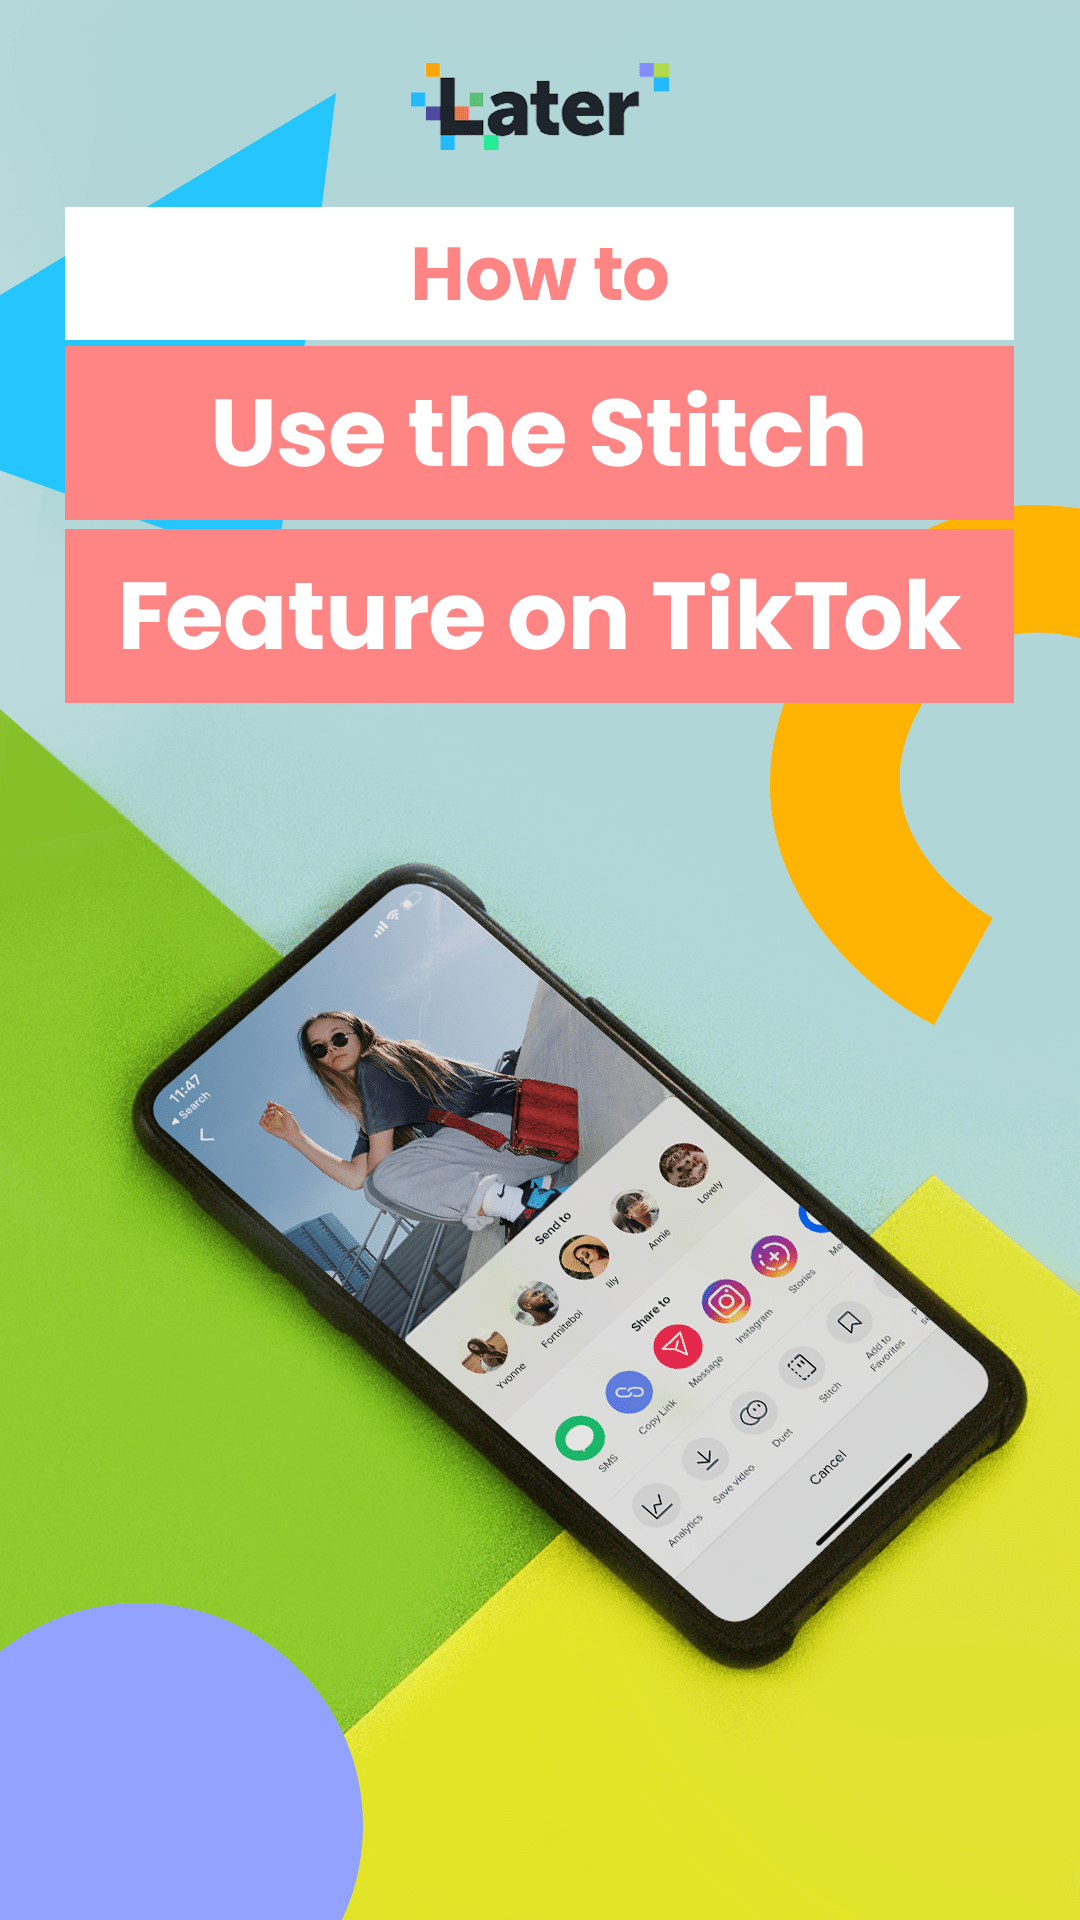 How To Use Stitch Tiktok S New Editing Feature Later Blog Stitch Media Education Social Media